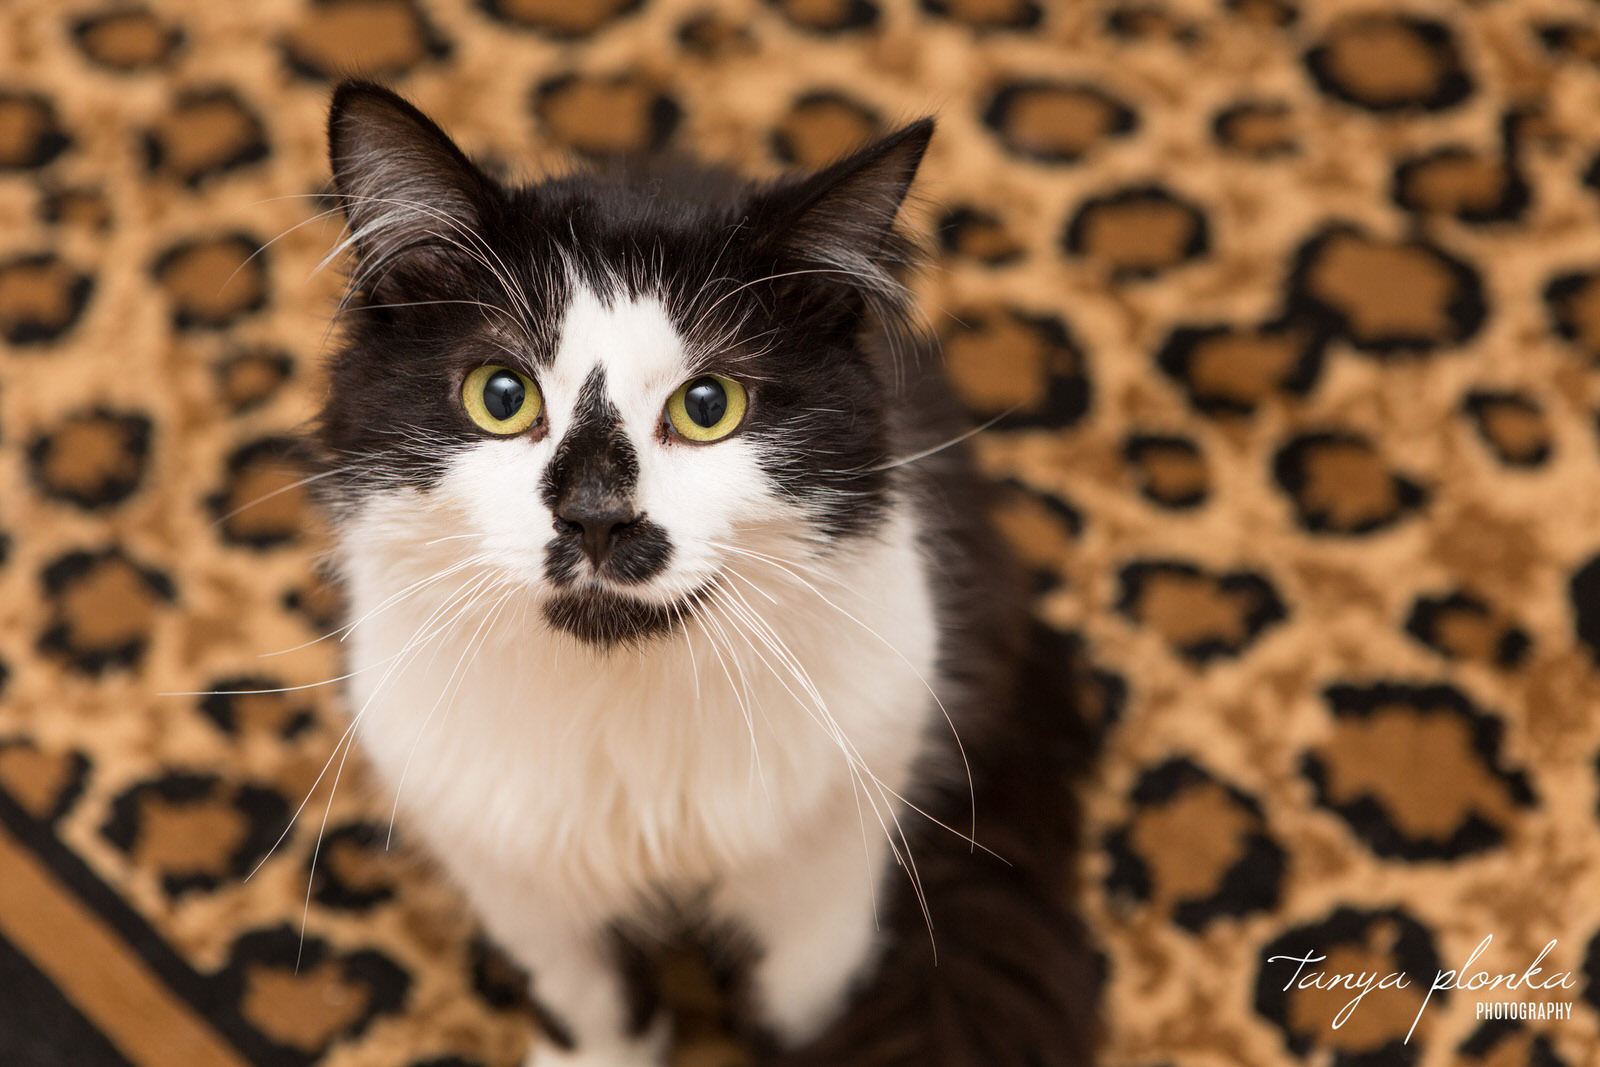 black and white cat looks up at camera while sitting on leopard print rug